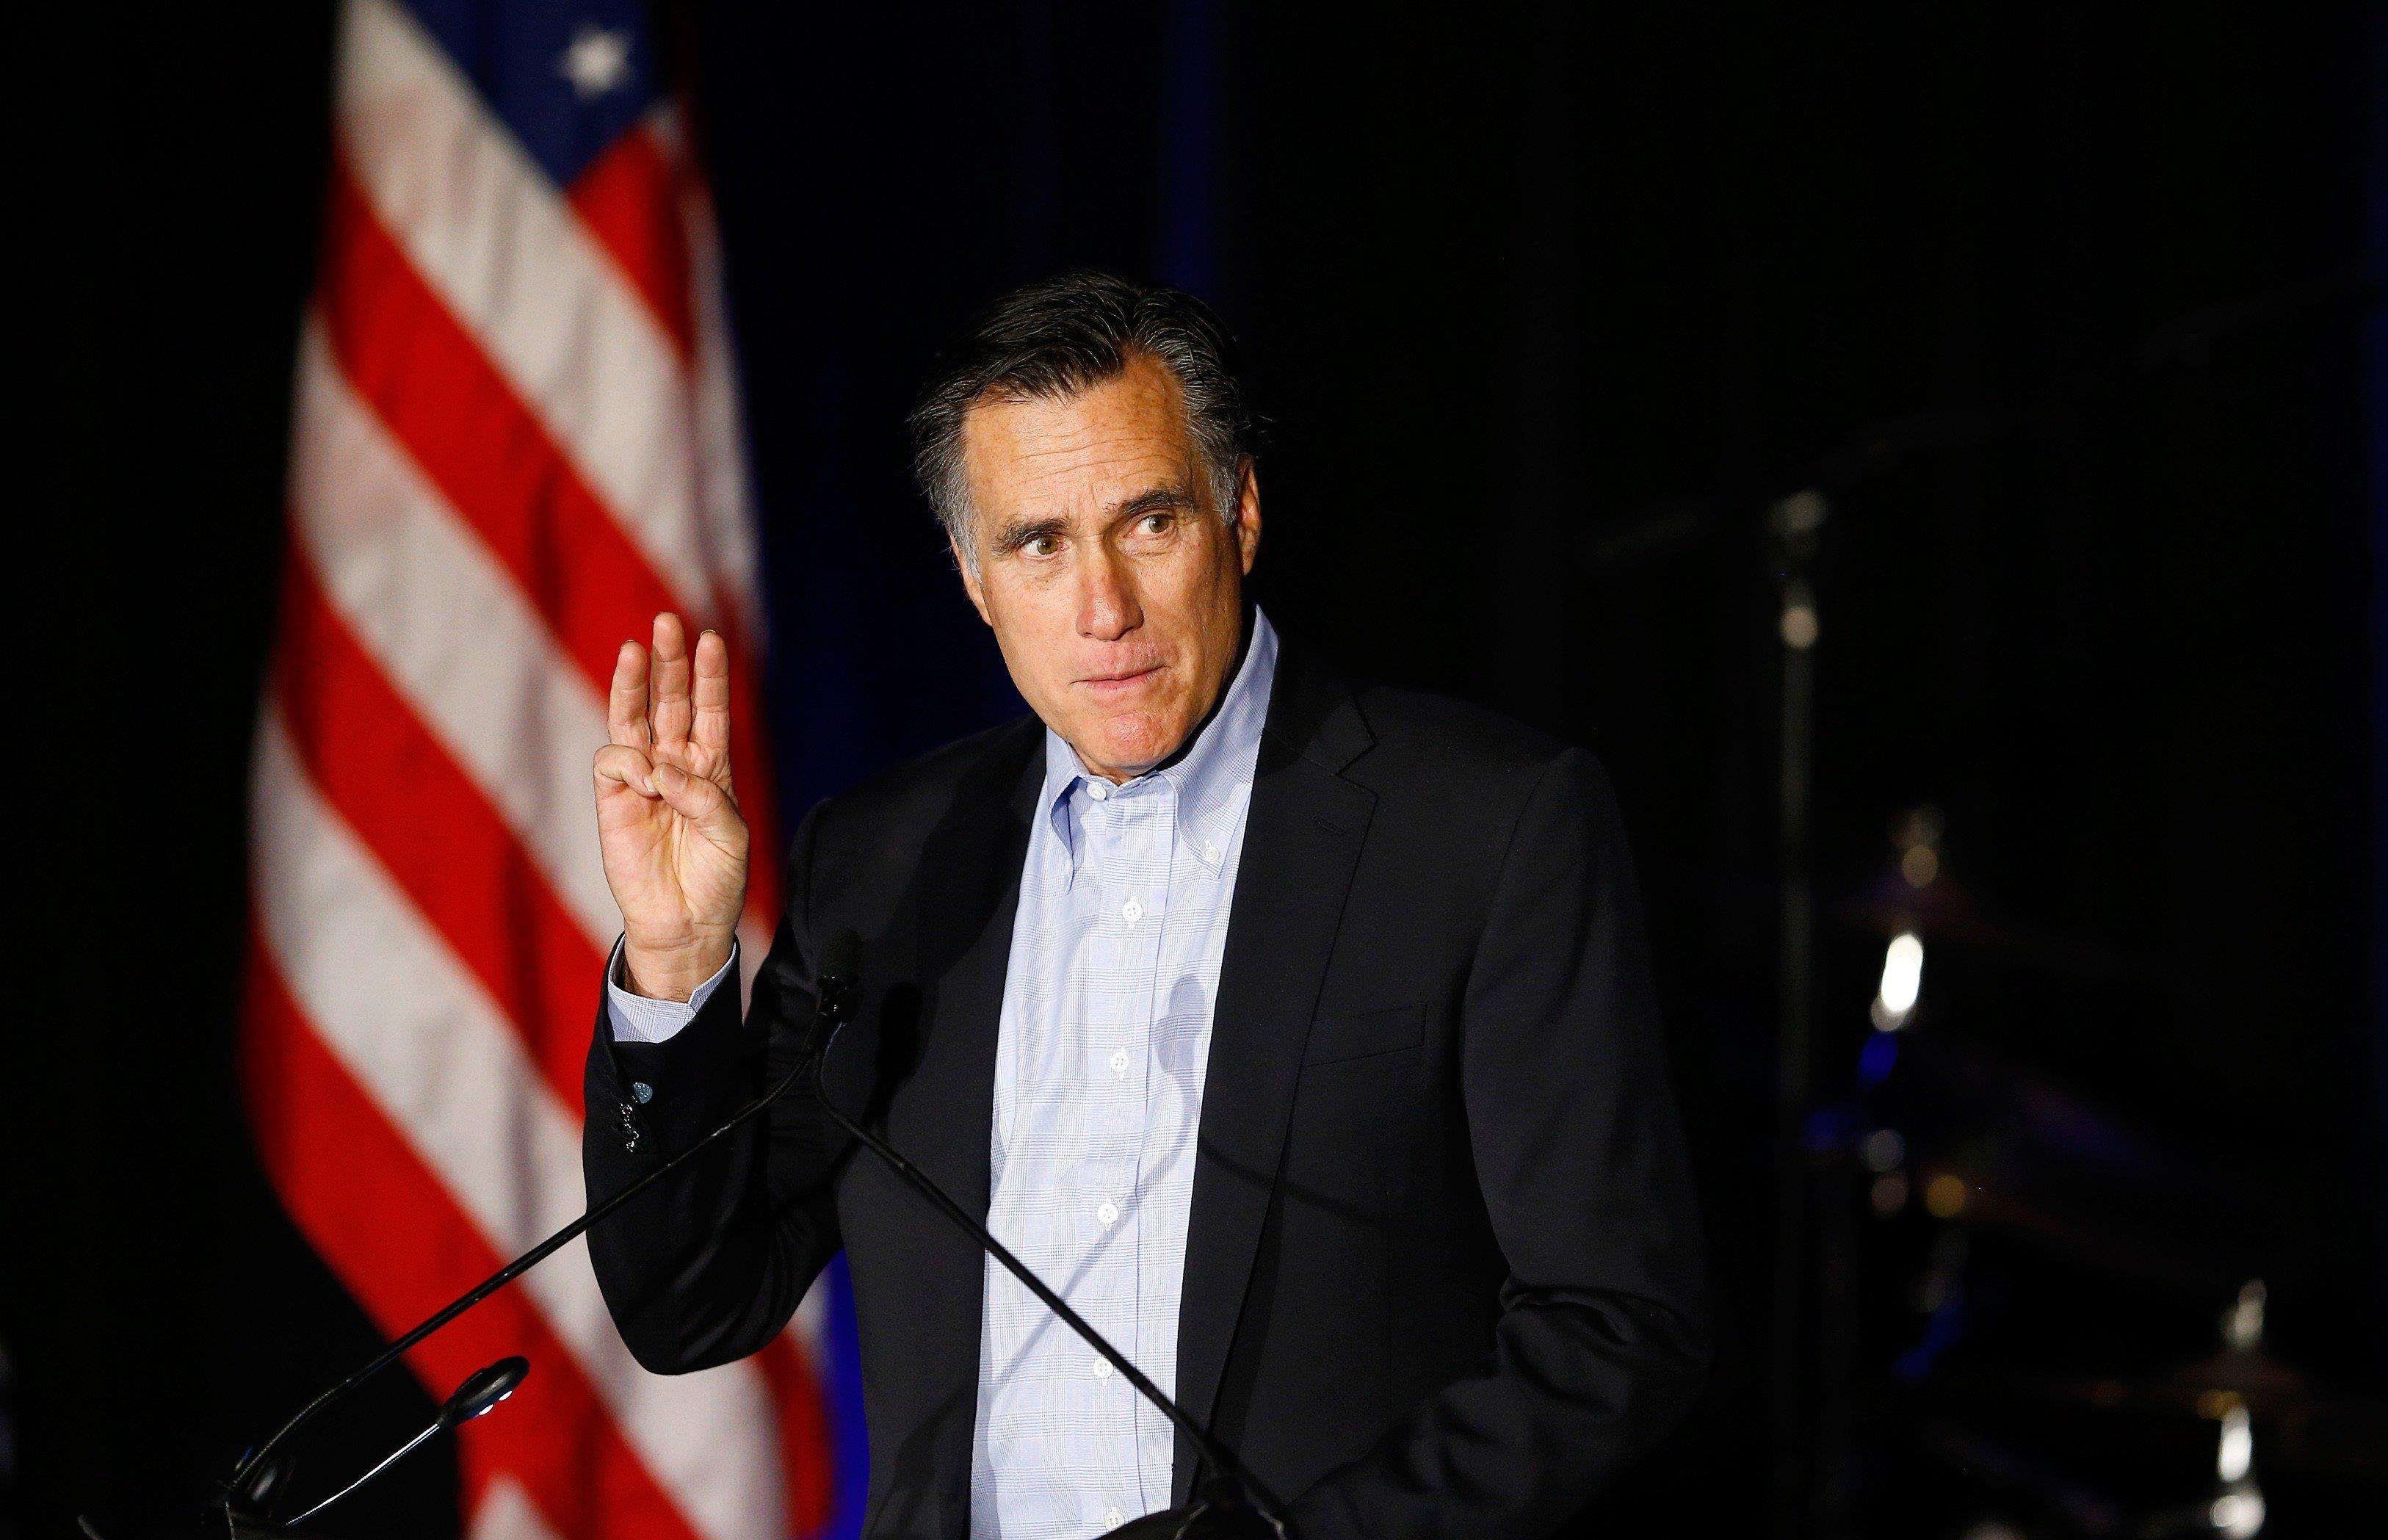 governor mitt romneys run for presidency One thing i've found interesting is mitt romney's statement that he knows how to run a  to be president than serving as the liberal governor of a state and.